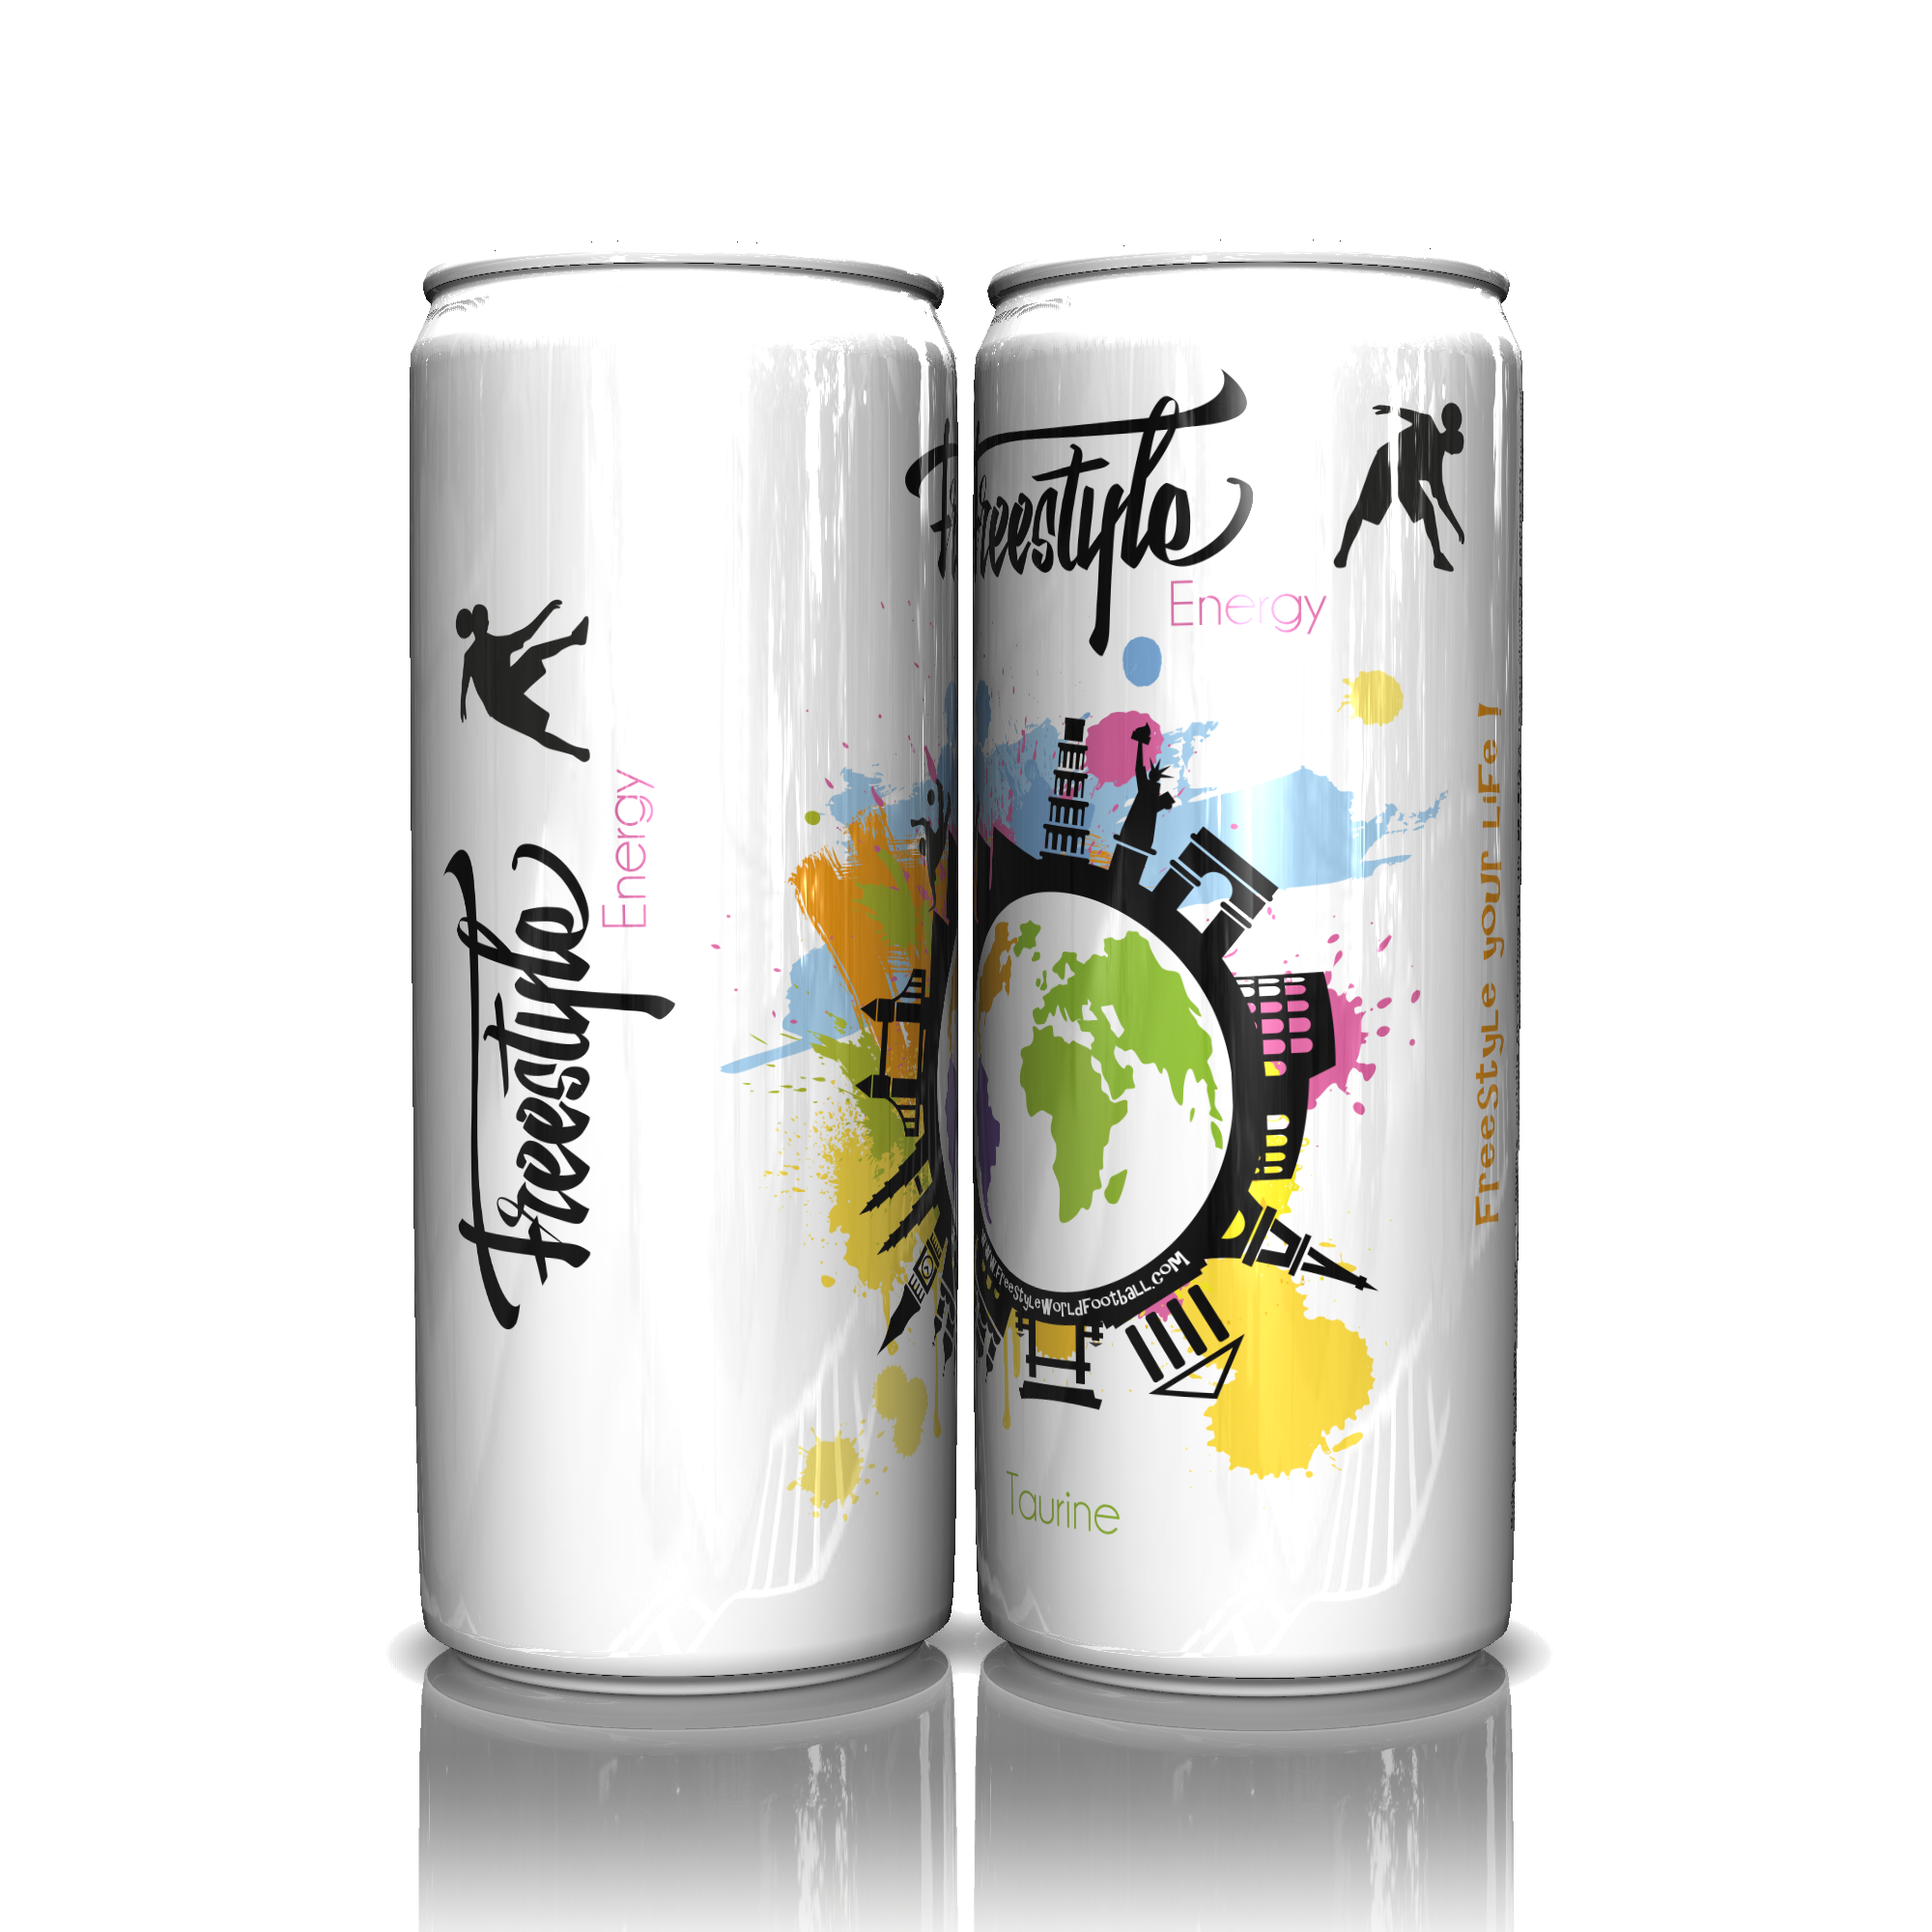 Freestyle Energy - Twin Cans